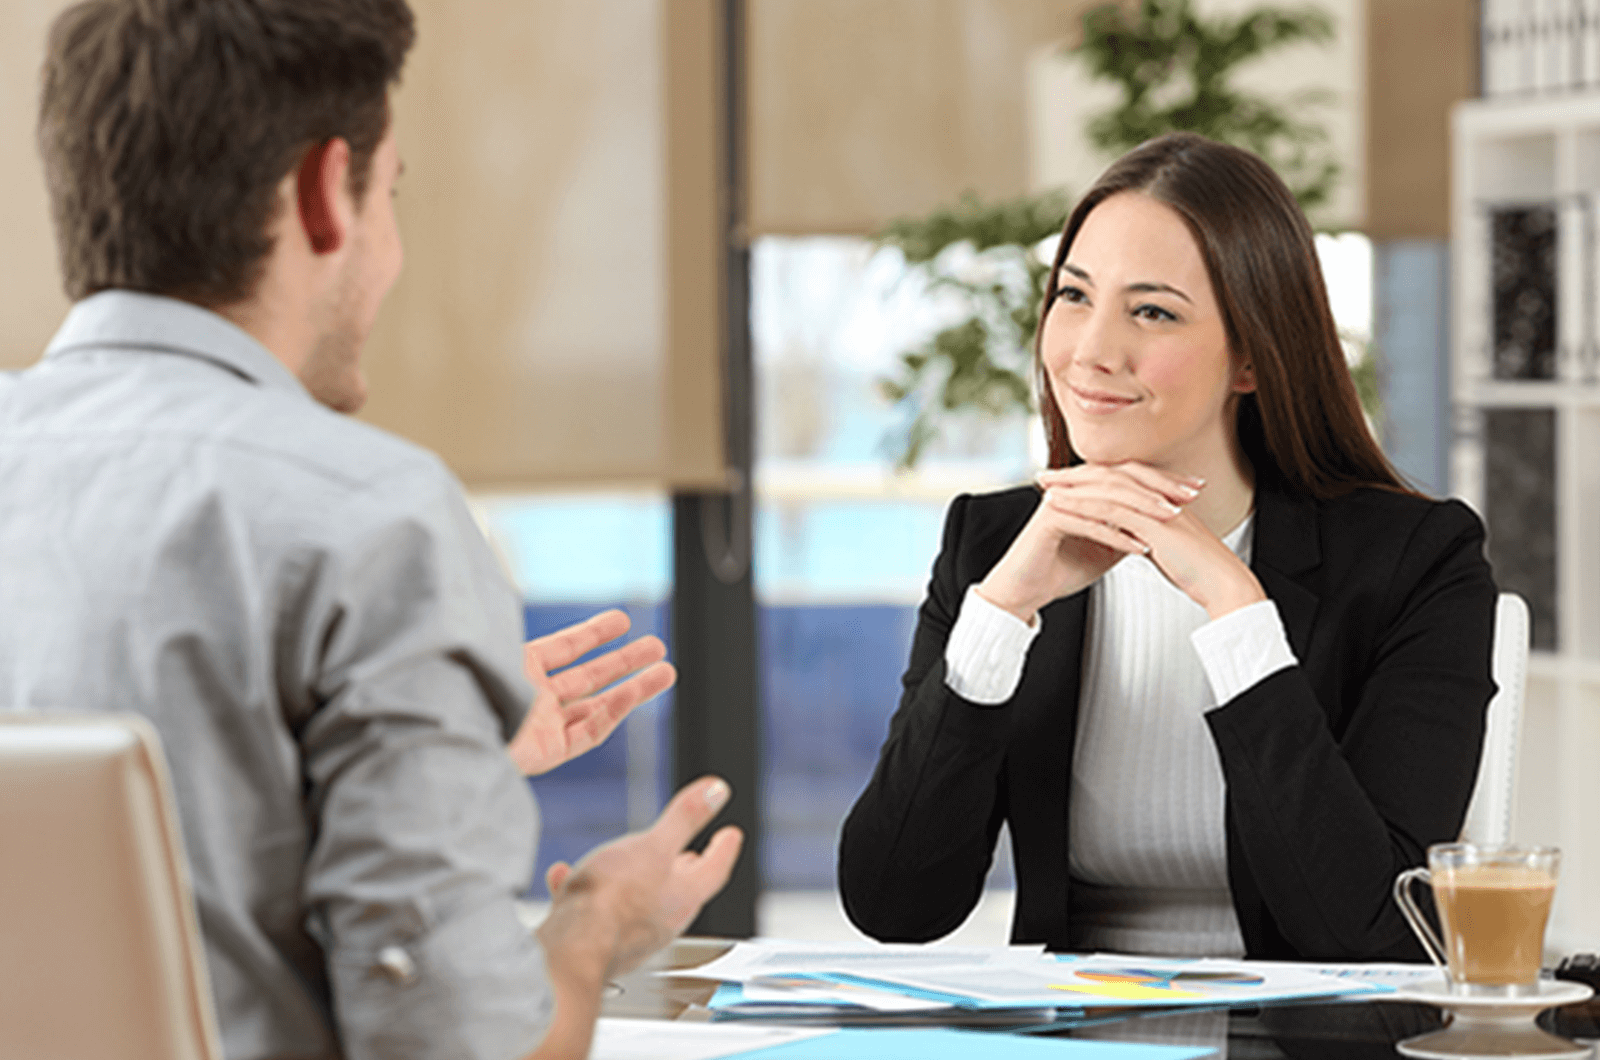 Woman with hands clasped listening to man speak